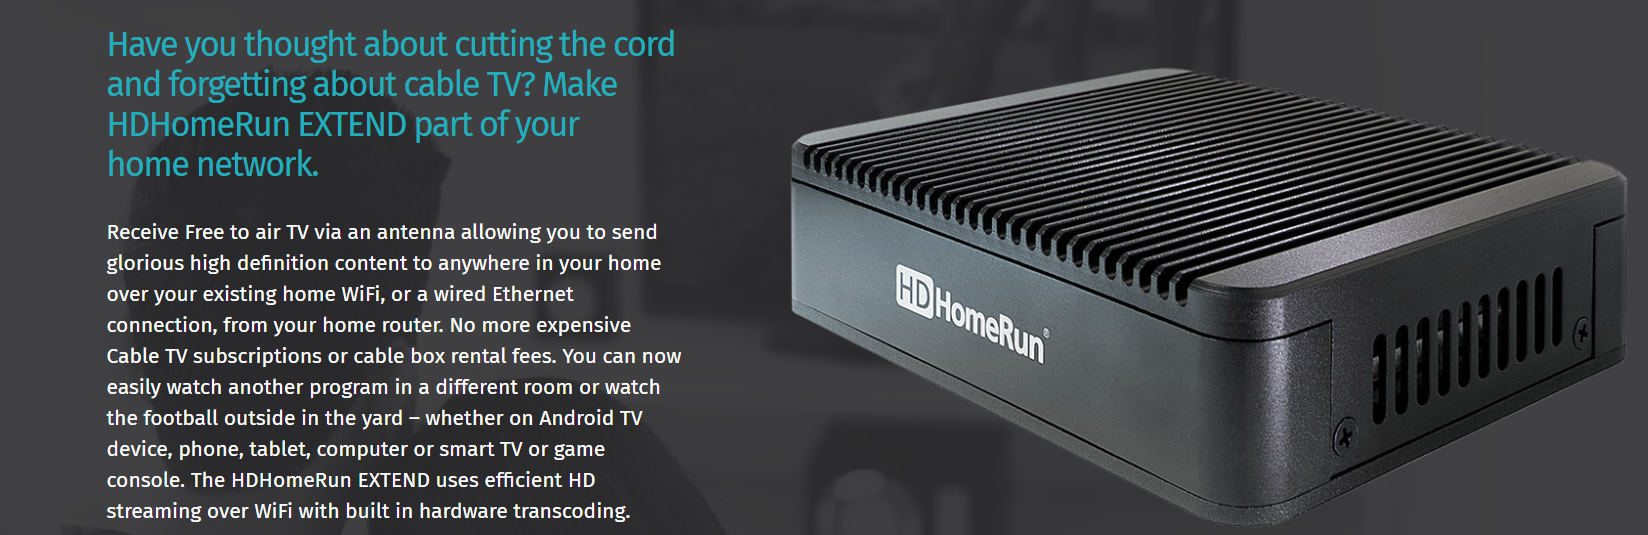 SiliconDust HDHomeRun EXTEND.FREE Broadcast HDTV (2-Tuner ...